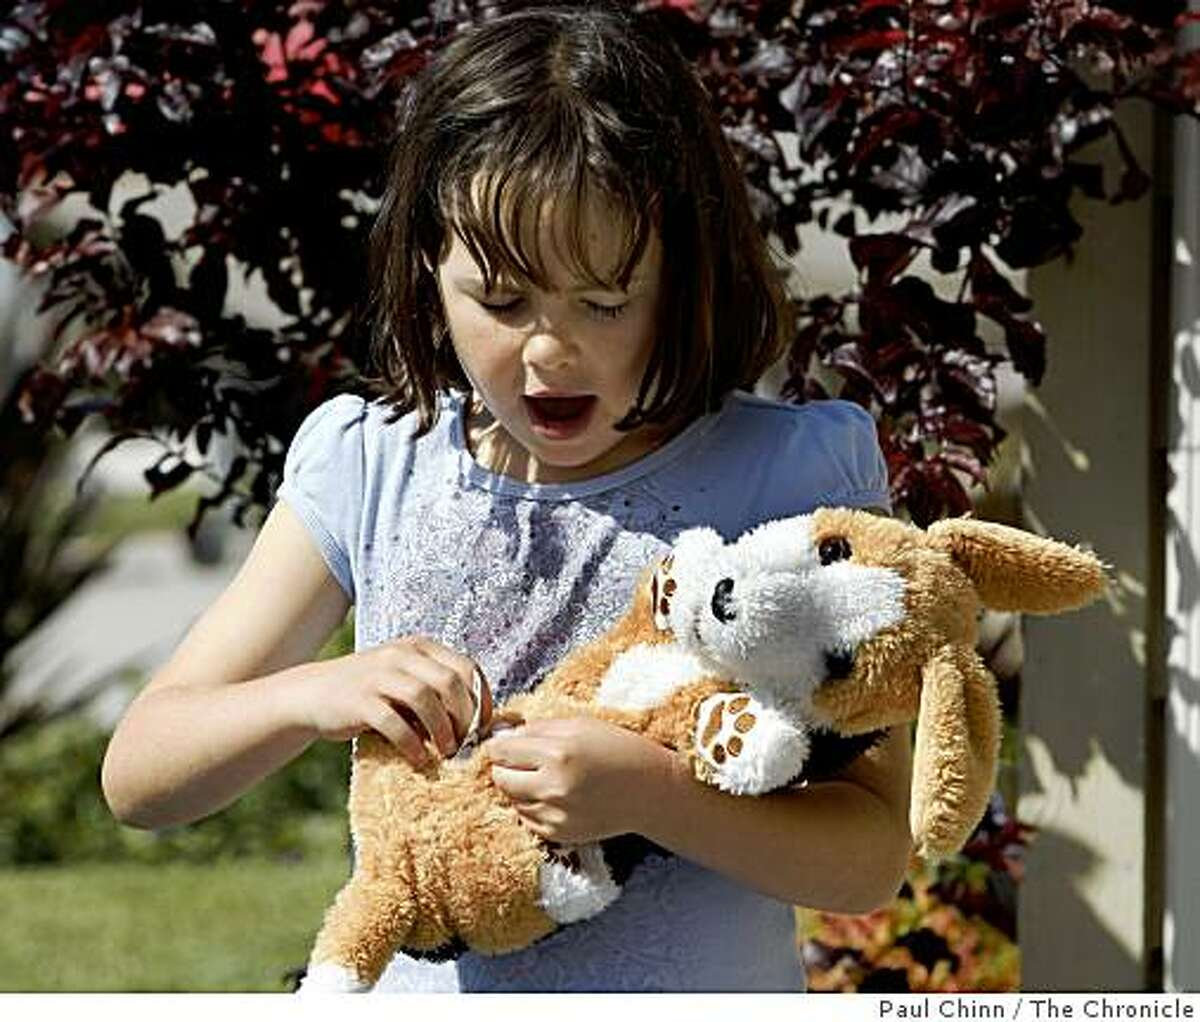 Maya Bliss, 7, cradles a stuffed dog that she claimed at a toy swap organized by the Coastside Mothers Club in Half Moon Bay, Calif., on Saturday, May 16, 2009.